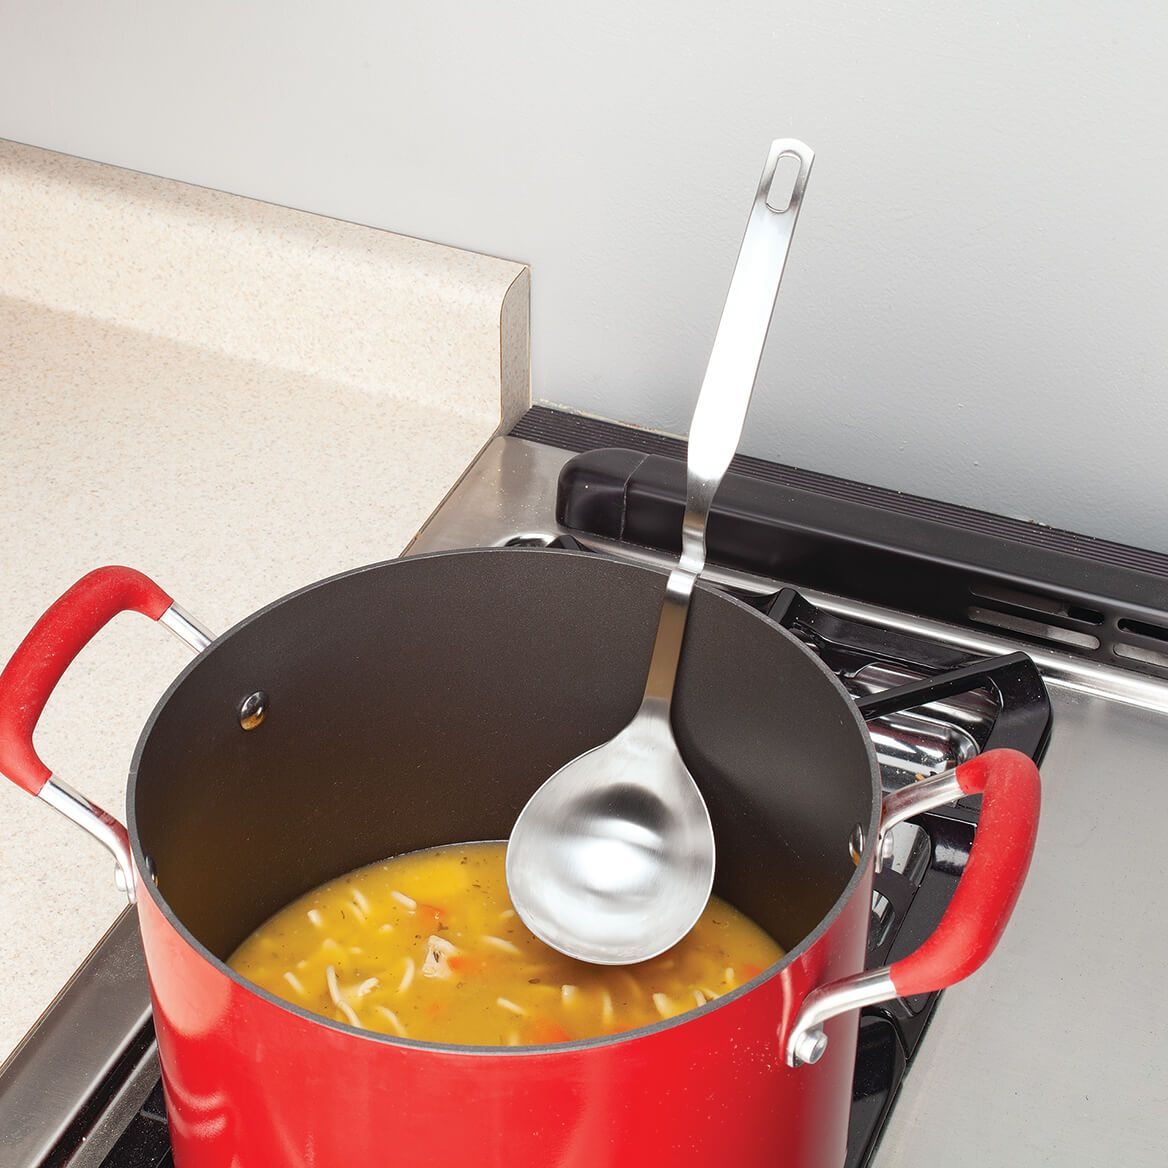 Stainless Steel Soup Ladle with Rim Rest-372010